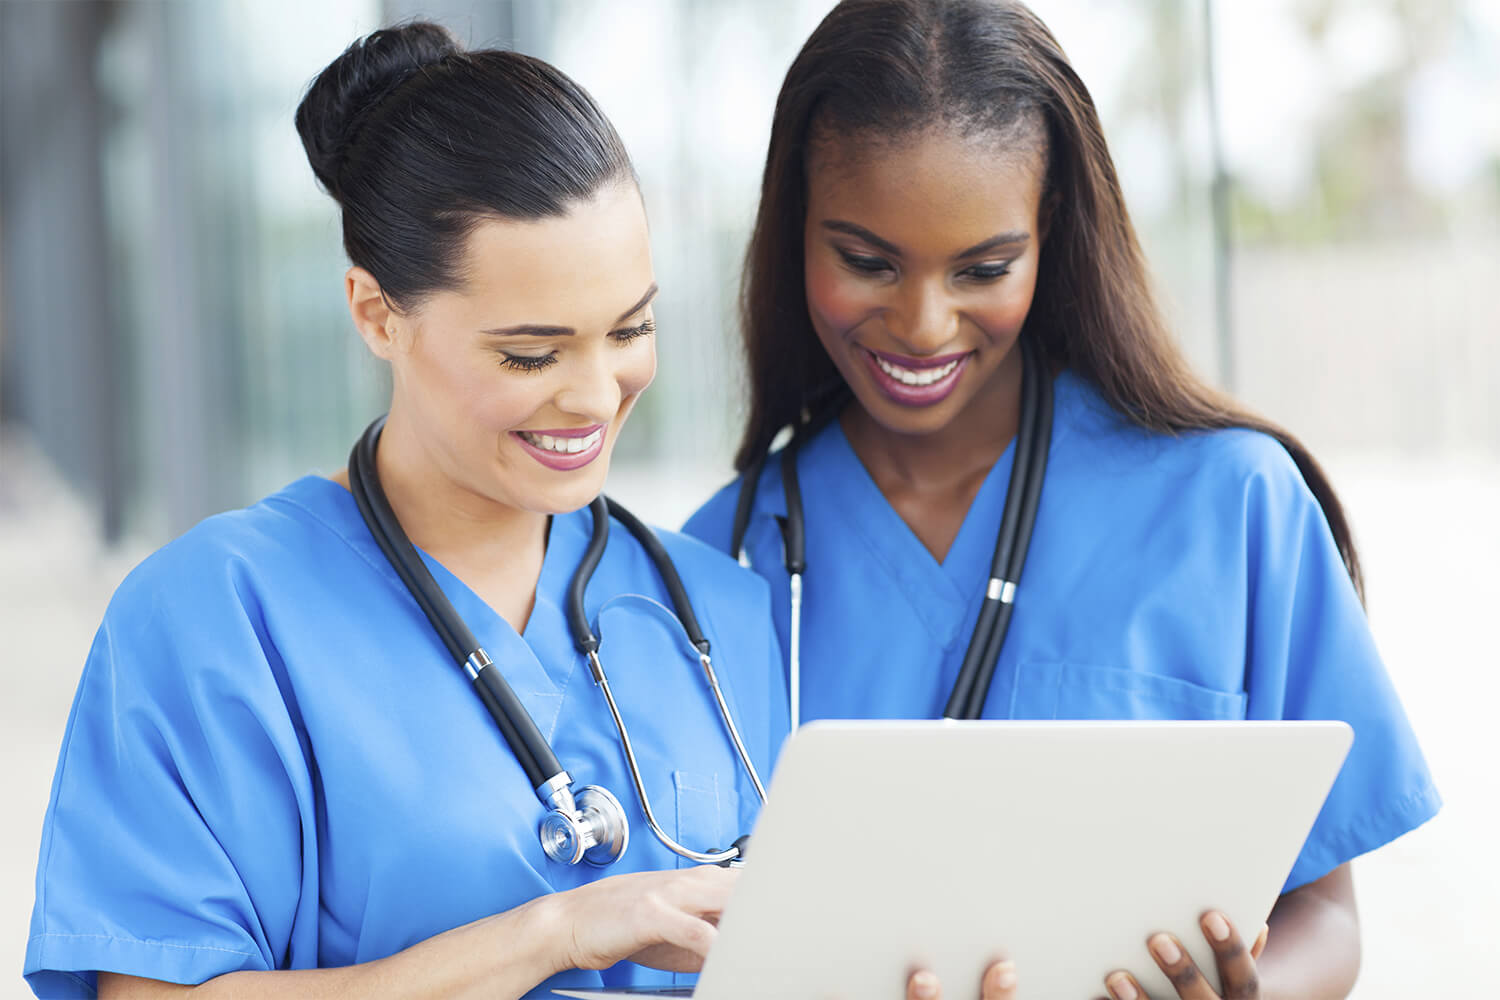 Top 6 Requirements for Becoming a CNA